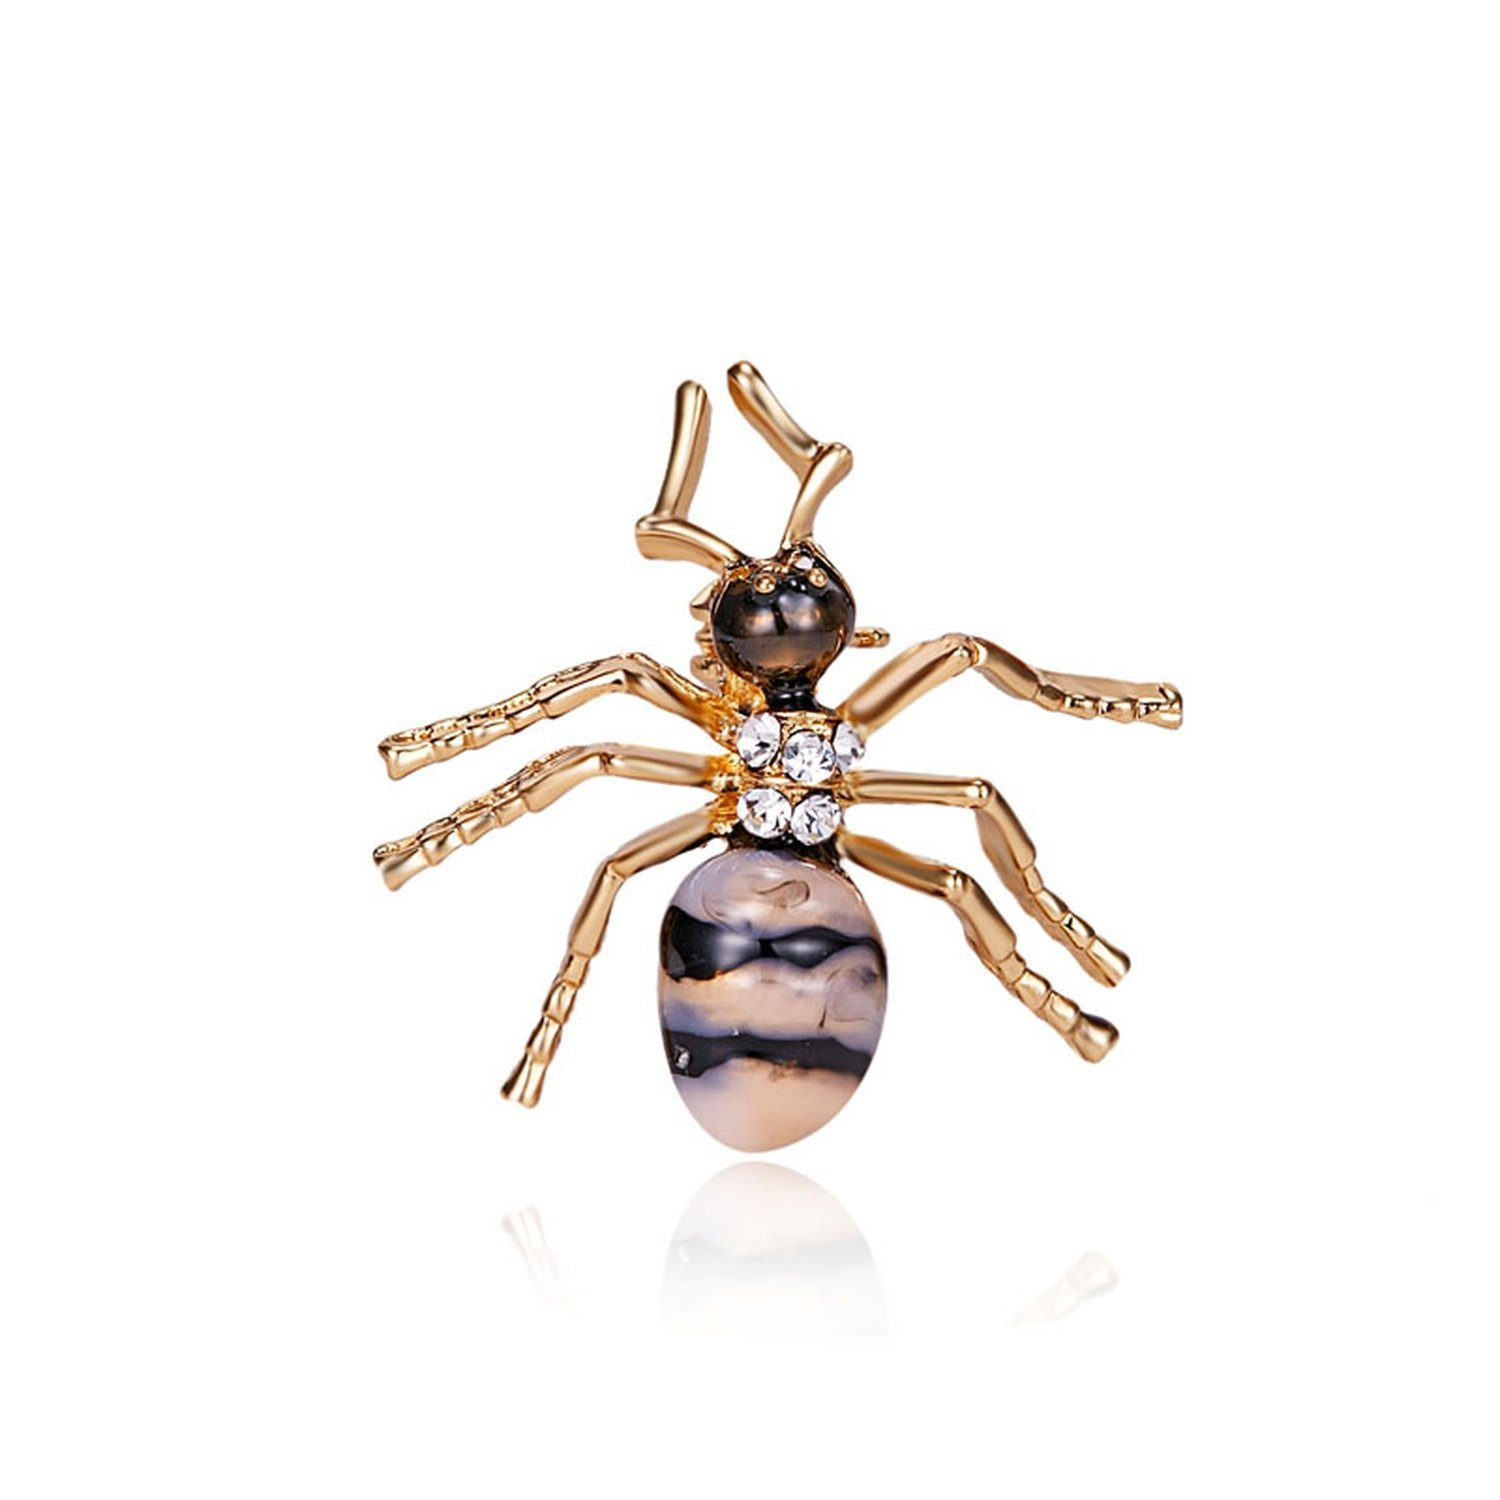 Cute Yellow Insect Bee Brooch For Women Ant Brooch Clothes Enamel Brooches Pin Jewelry Gifts,Ant 1